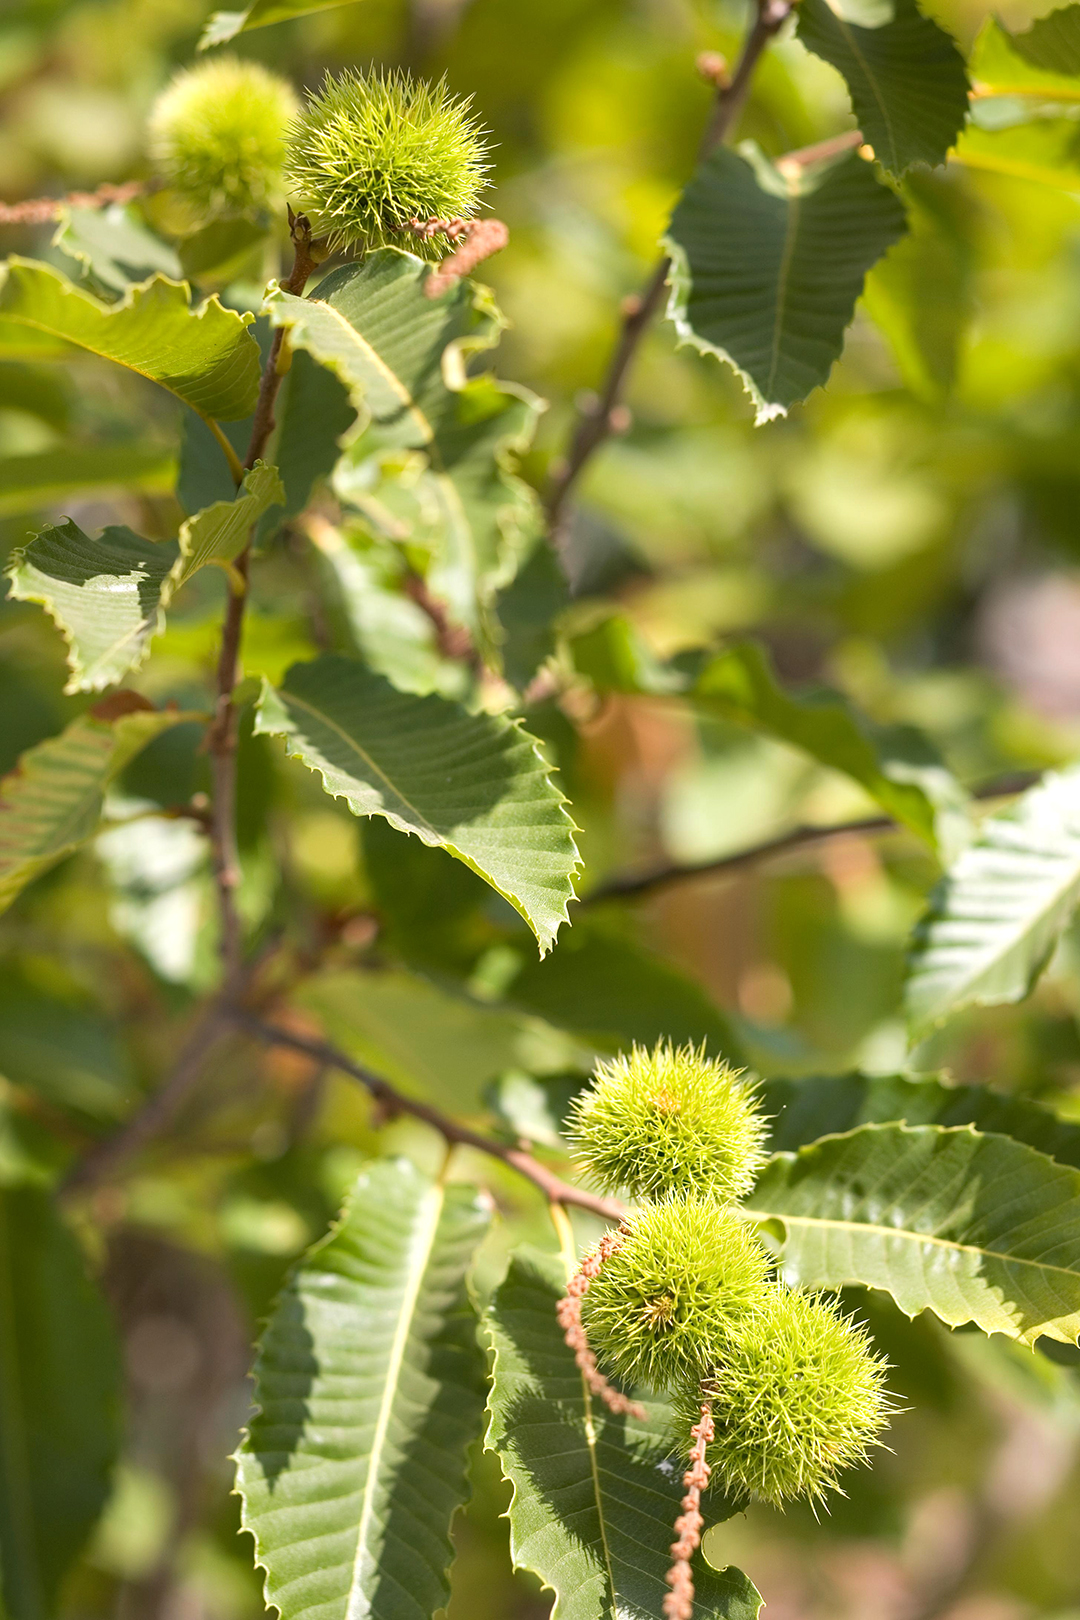 What Kind of Tree Produces Spiked Round Balls, and What Are Their